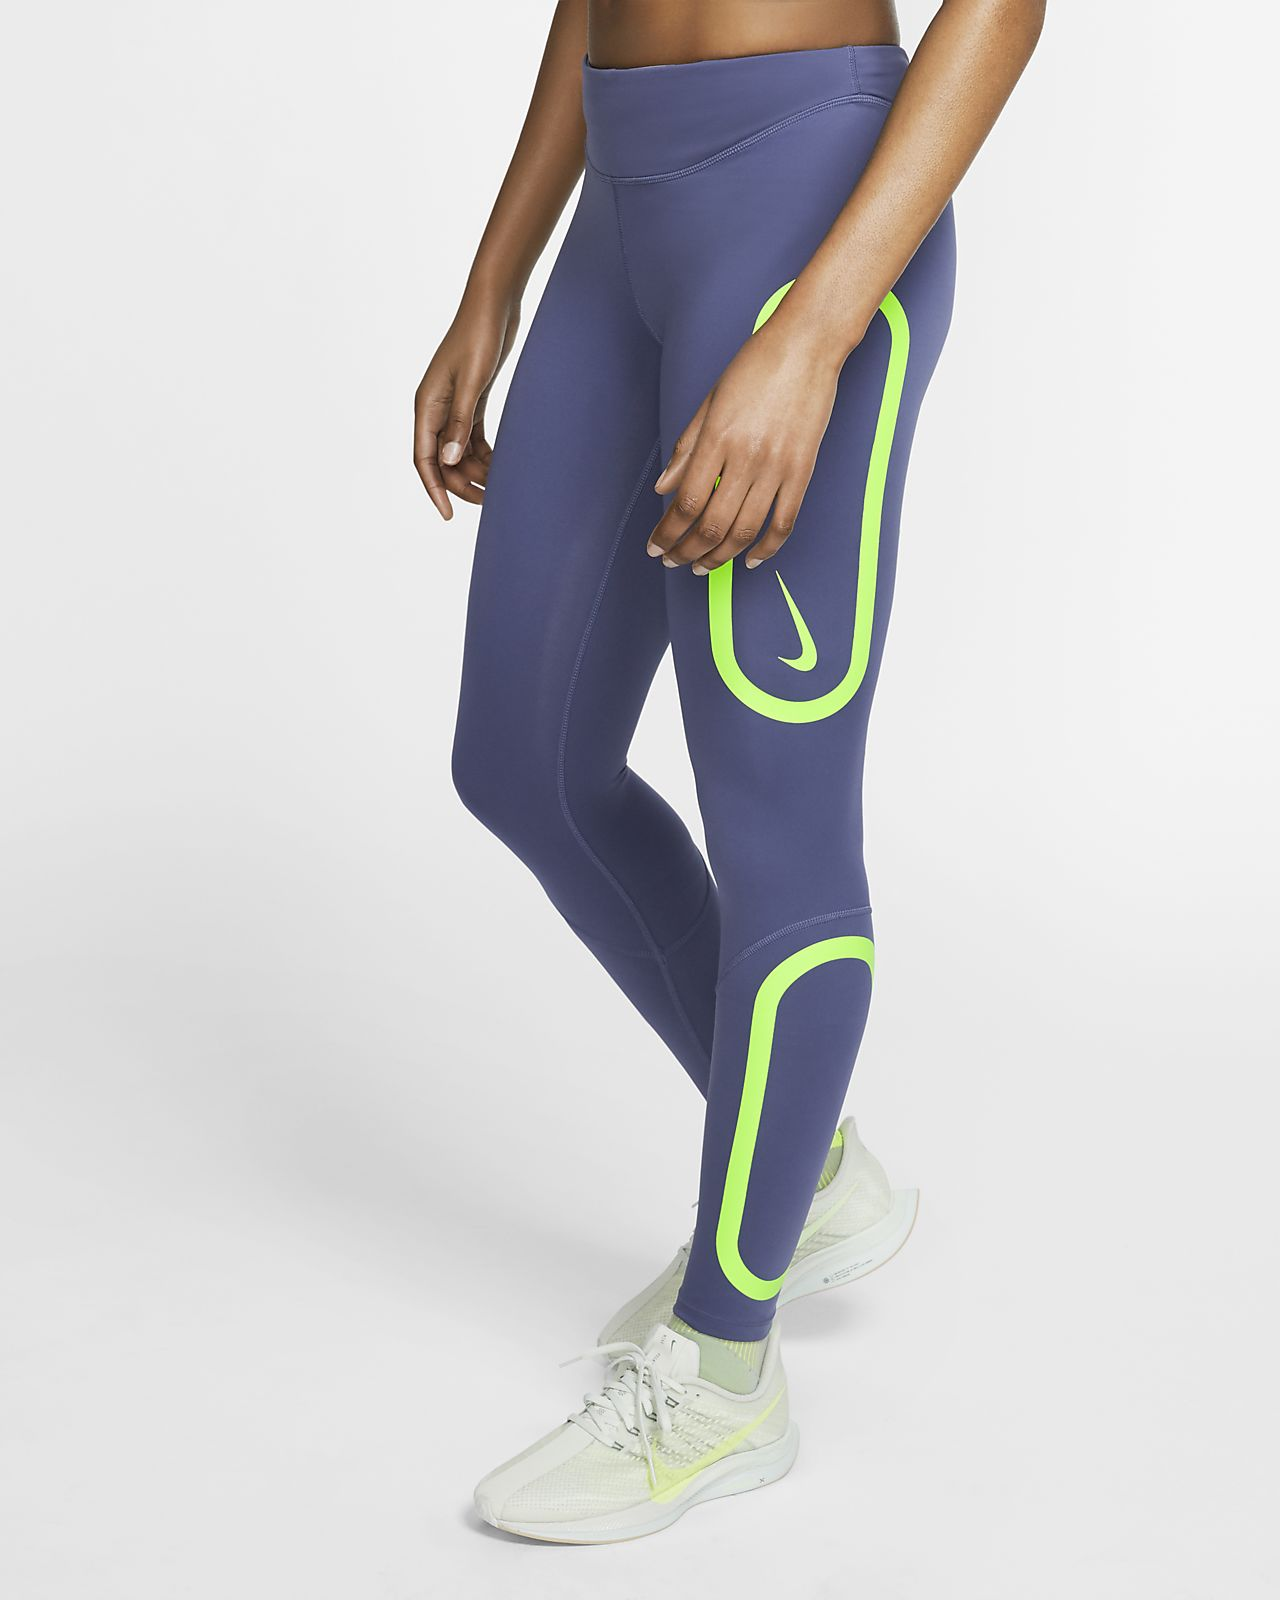 Epic Nike Lux Graphic Tights Women's Running bgY6f7y